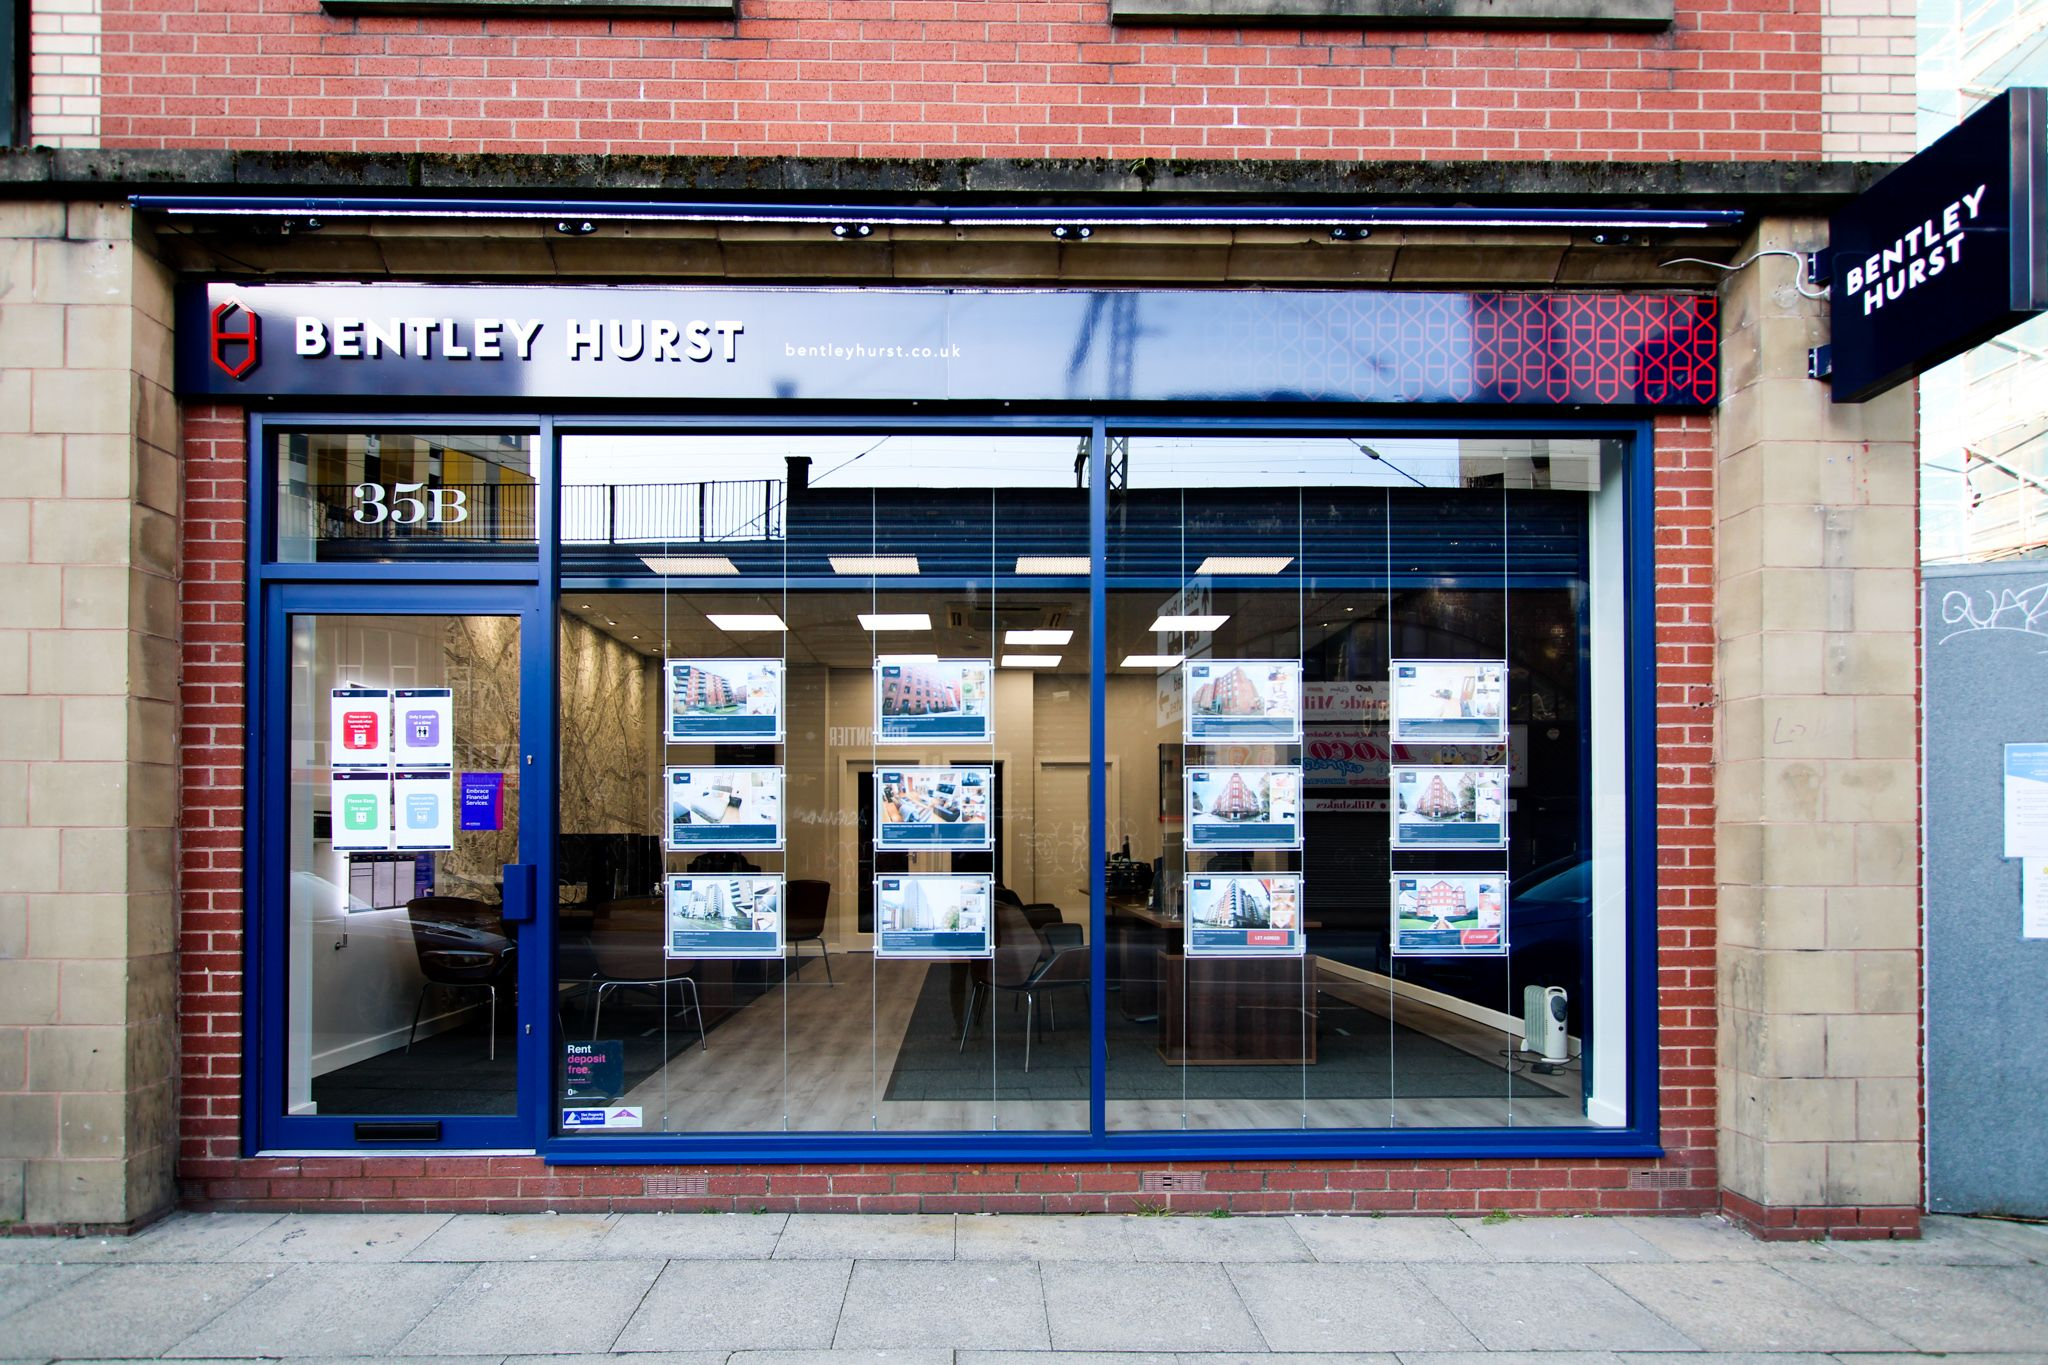 guide-to-letting property - Bentley Hurst